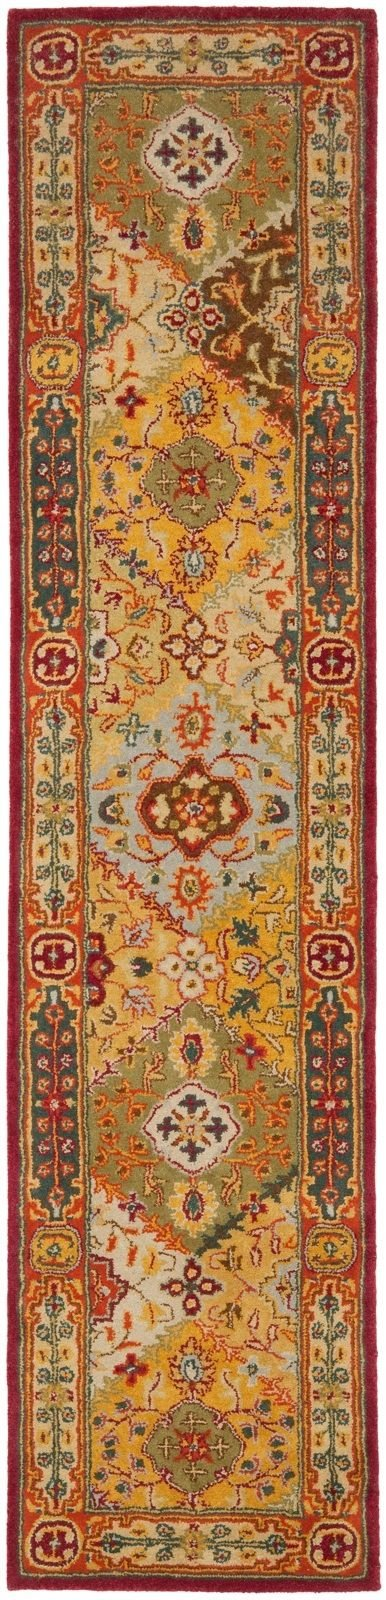 2'3'' x 12' Runner Safavieh Rug HG512A-212 Hand Tufted India ''Heritage Collection''